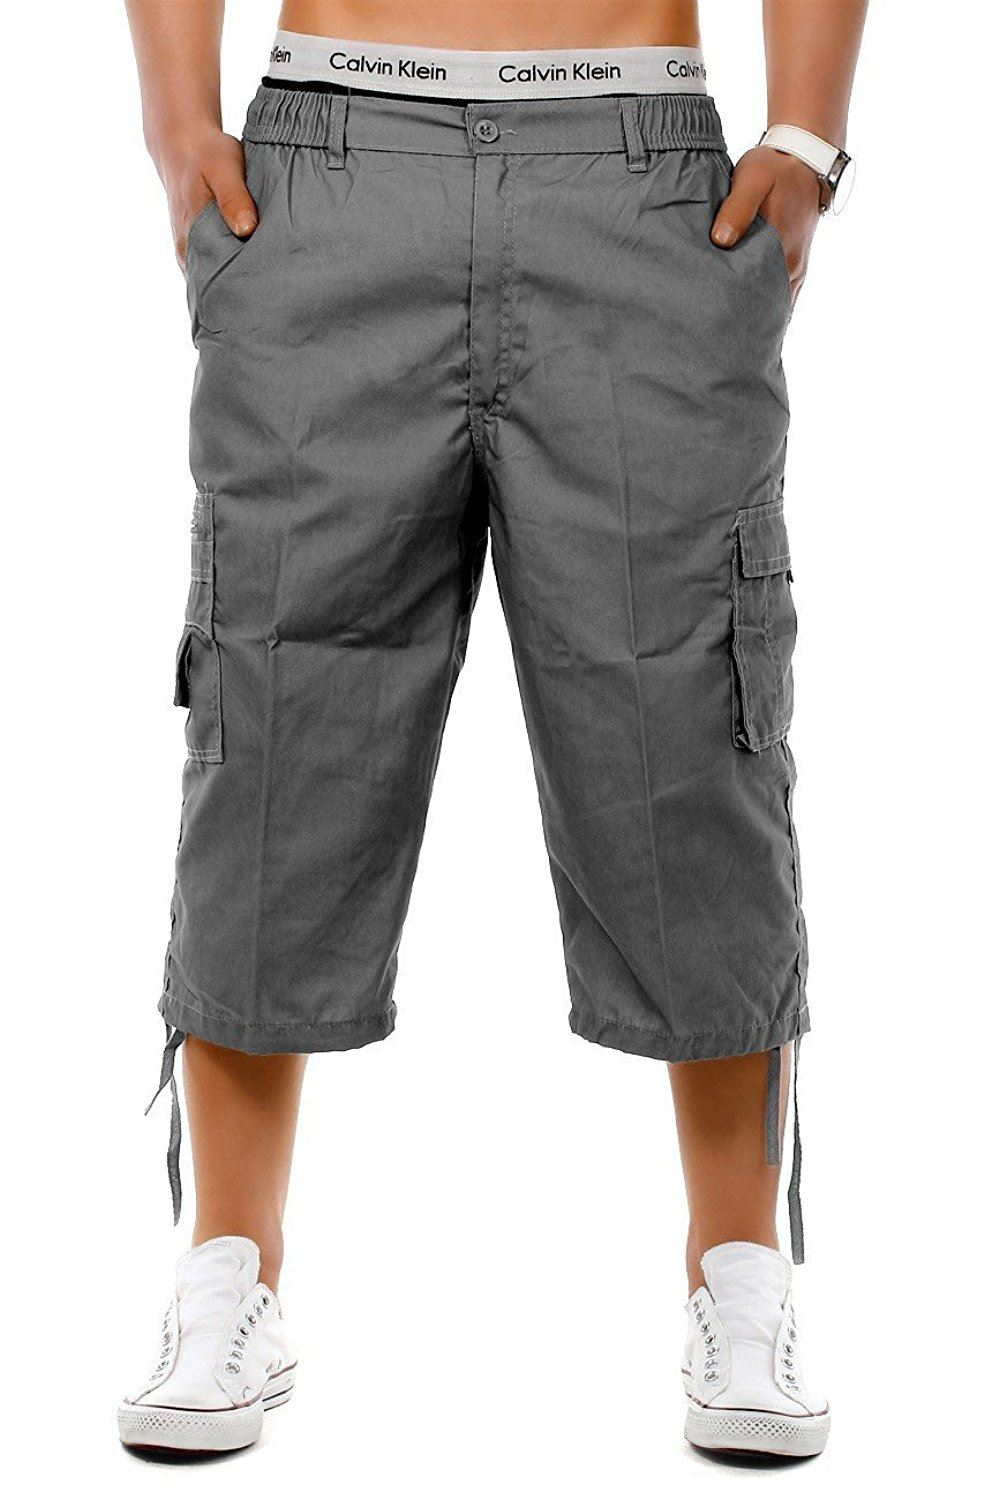 Mens-3-4-Long-Length-Shorts-Elasticated-Waist-Cargo-Combat-Three-Quarter-Shorts thumbnail 9